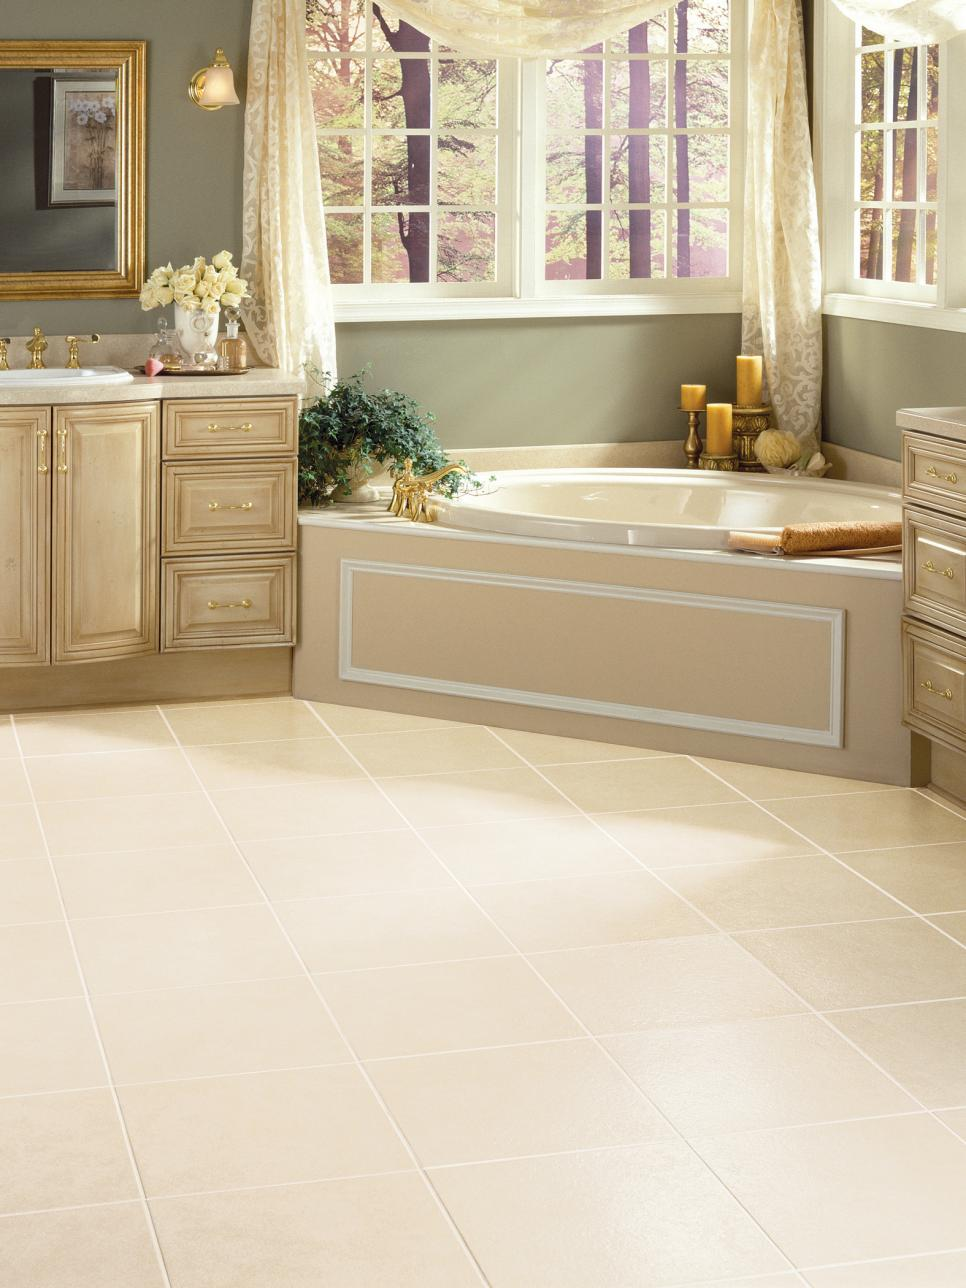 Vinyl bathroom floors hgtv for Vinyl flooring bathroom